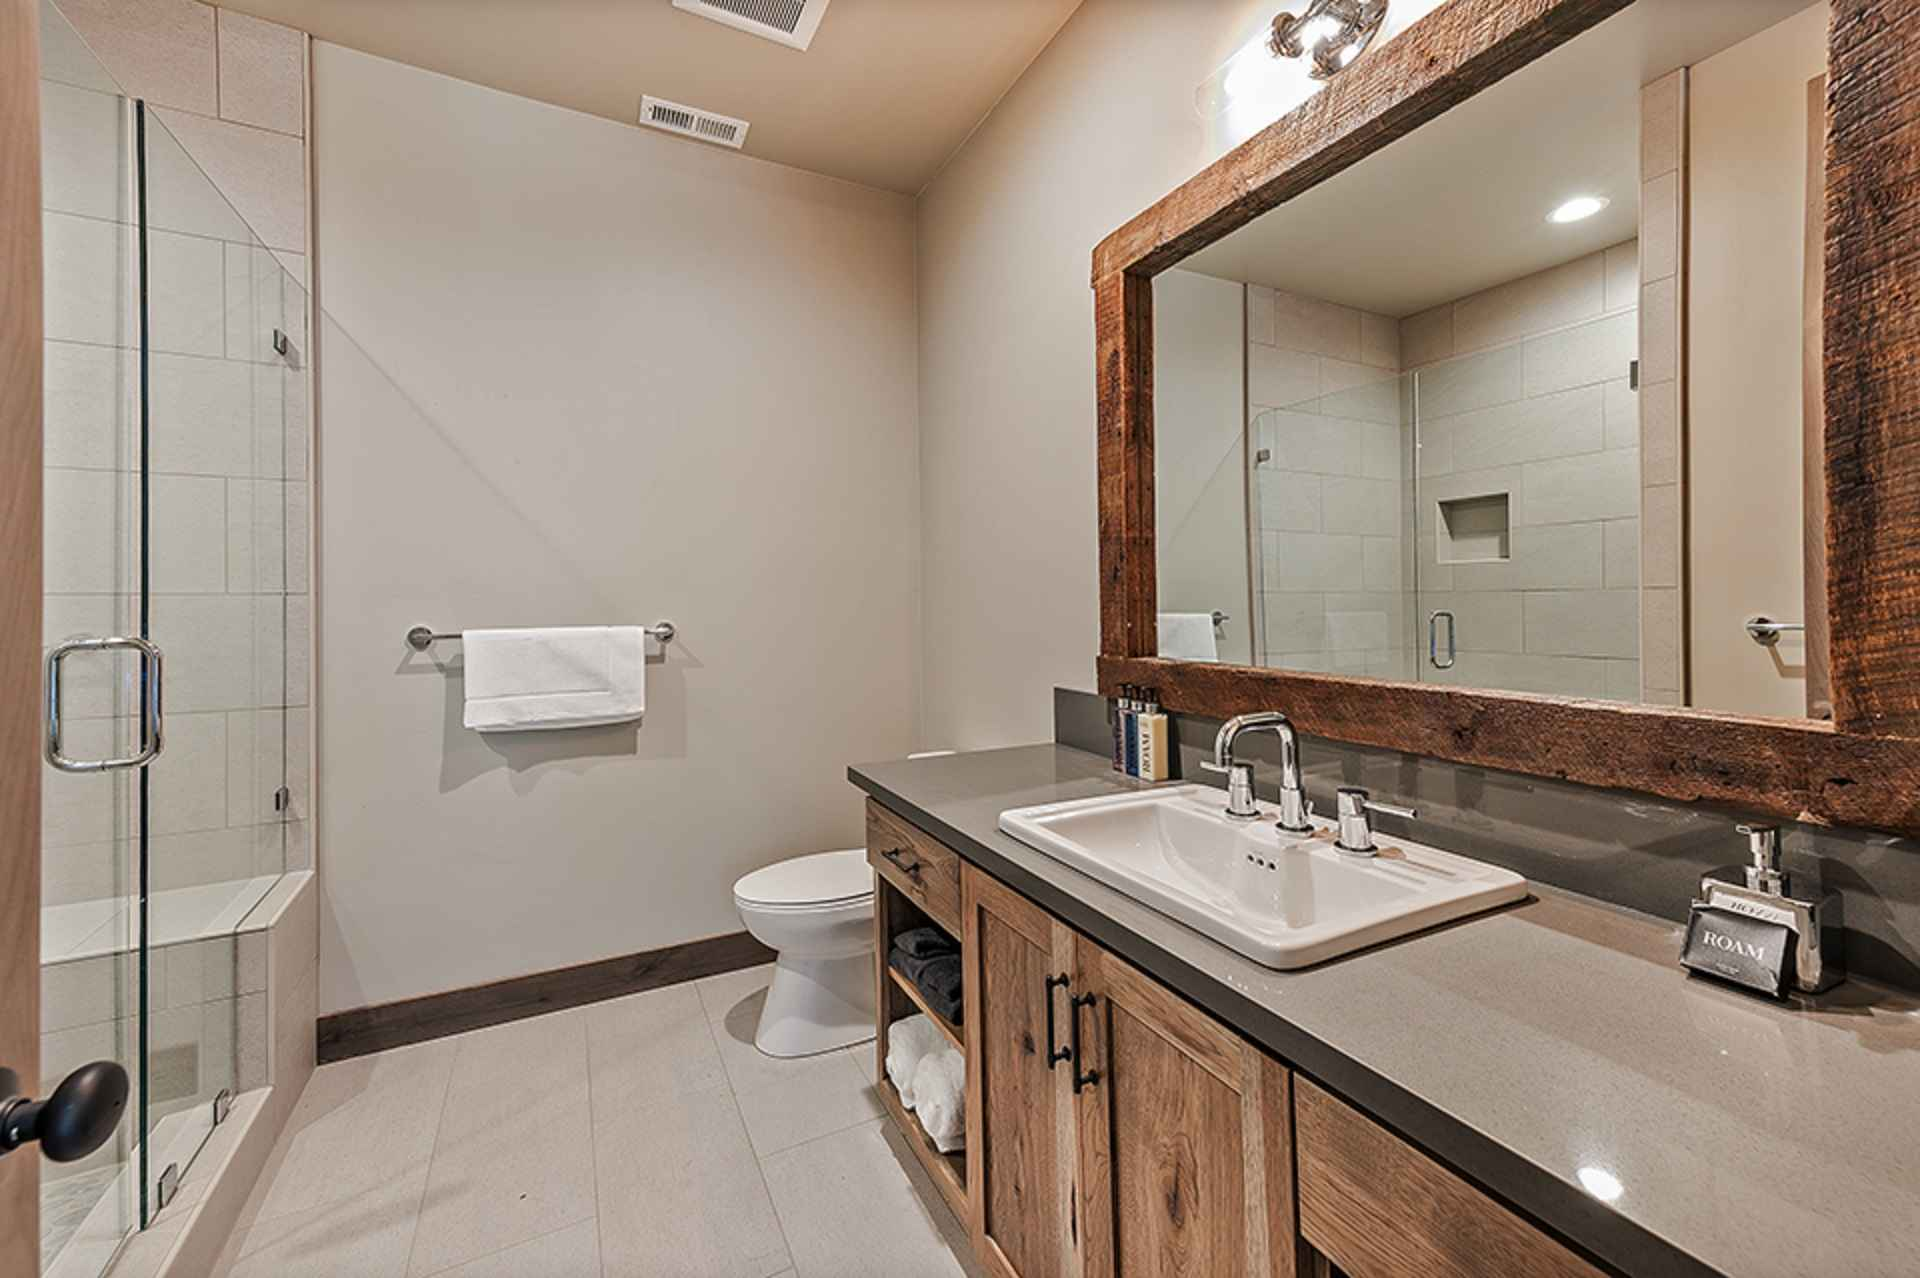 prop_3914_1564424878_13_bedroom_15_bathroom_mega_mansion.jpg